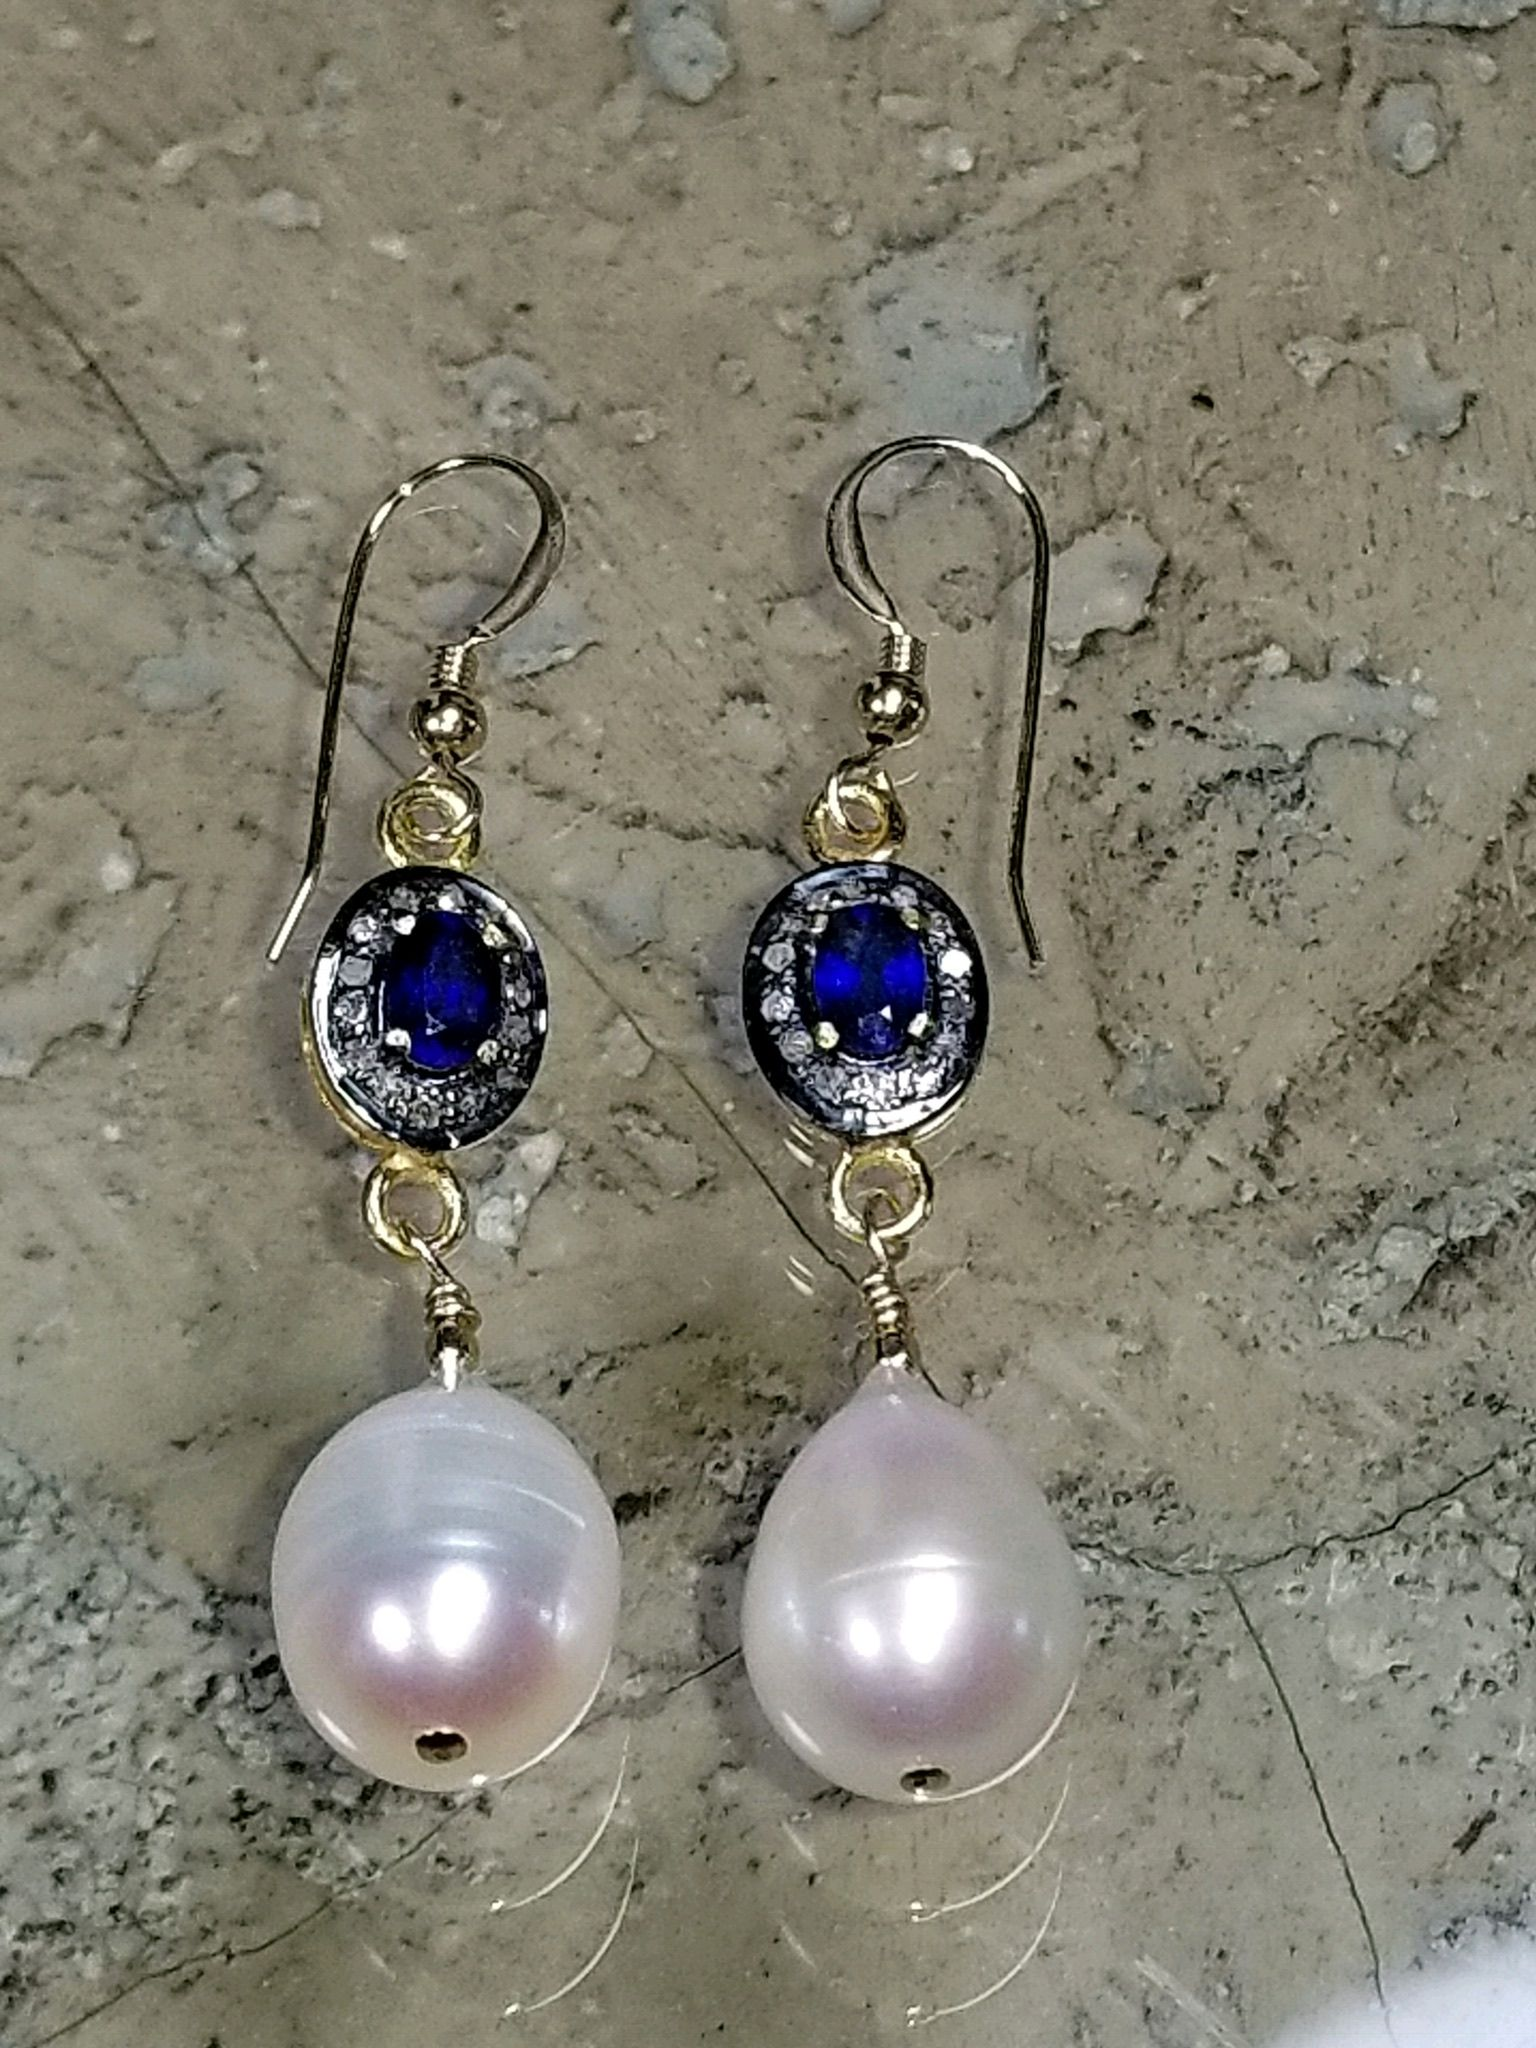 4865523c5 Stunning sapphire, diamond and freshwater pearl drop earrings. Earrings  have a 2 inch drop